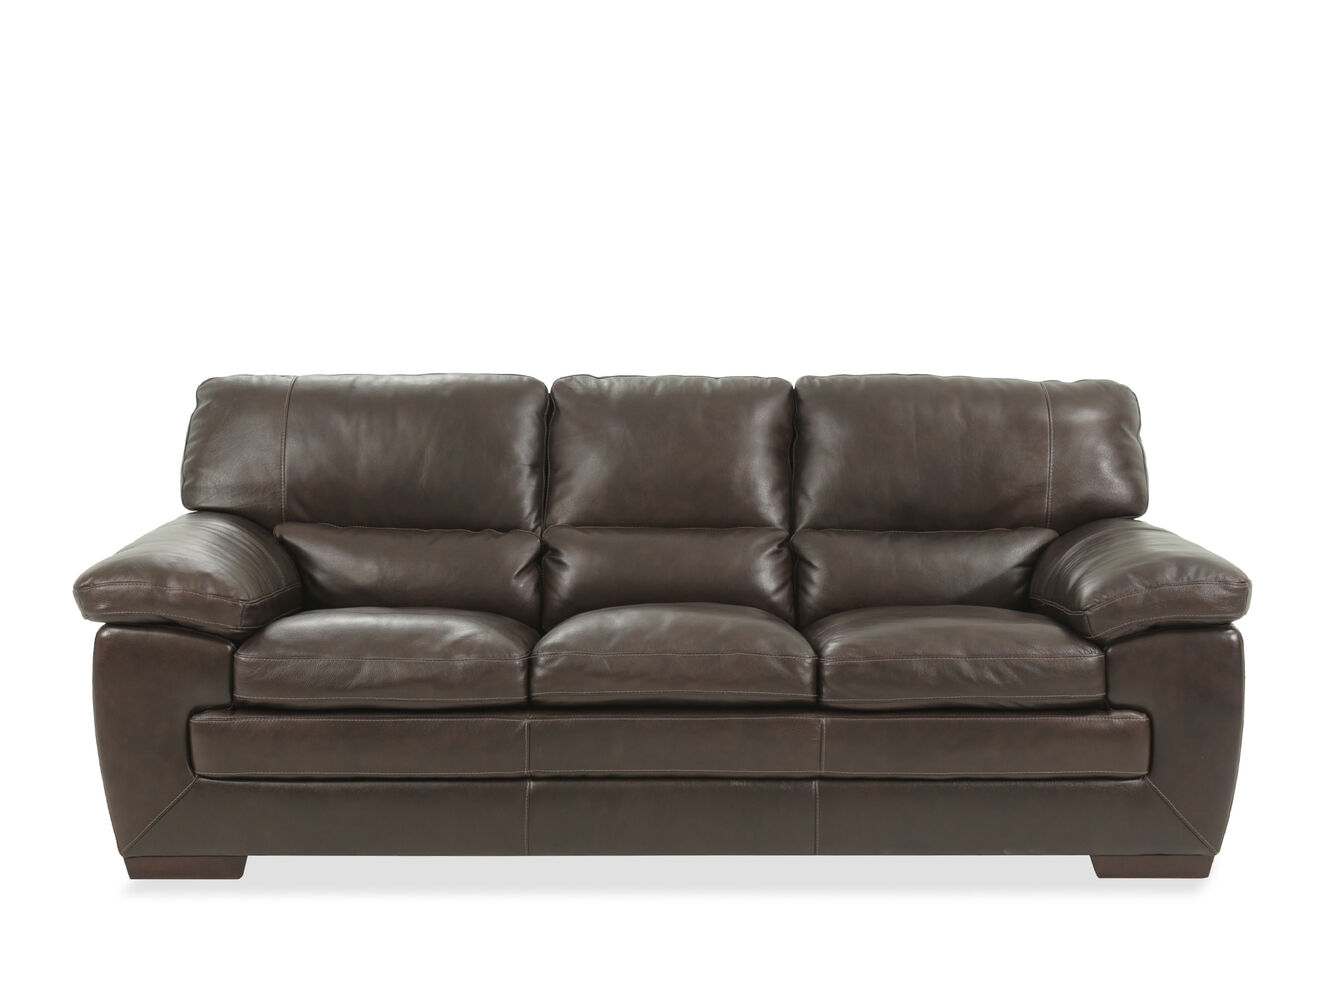 Simon Li Leather Longhorn Black Oak Sofa Mathis Brothers Furniture